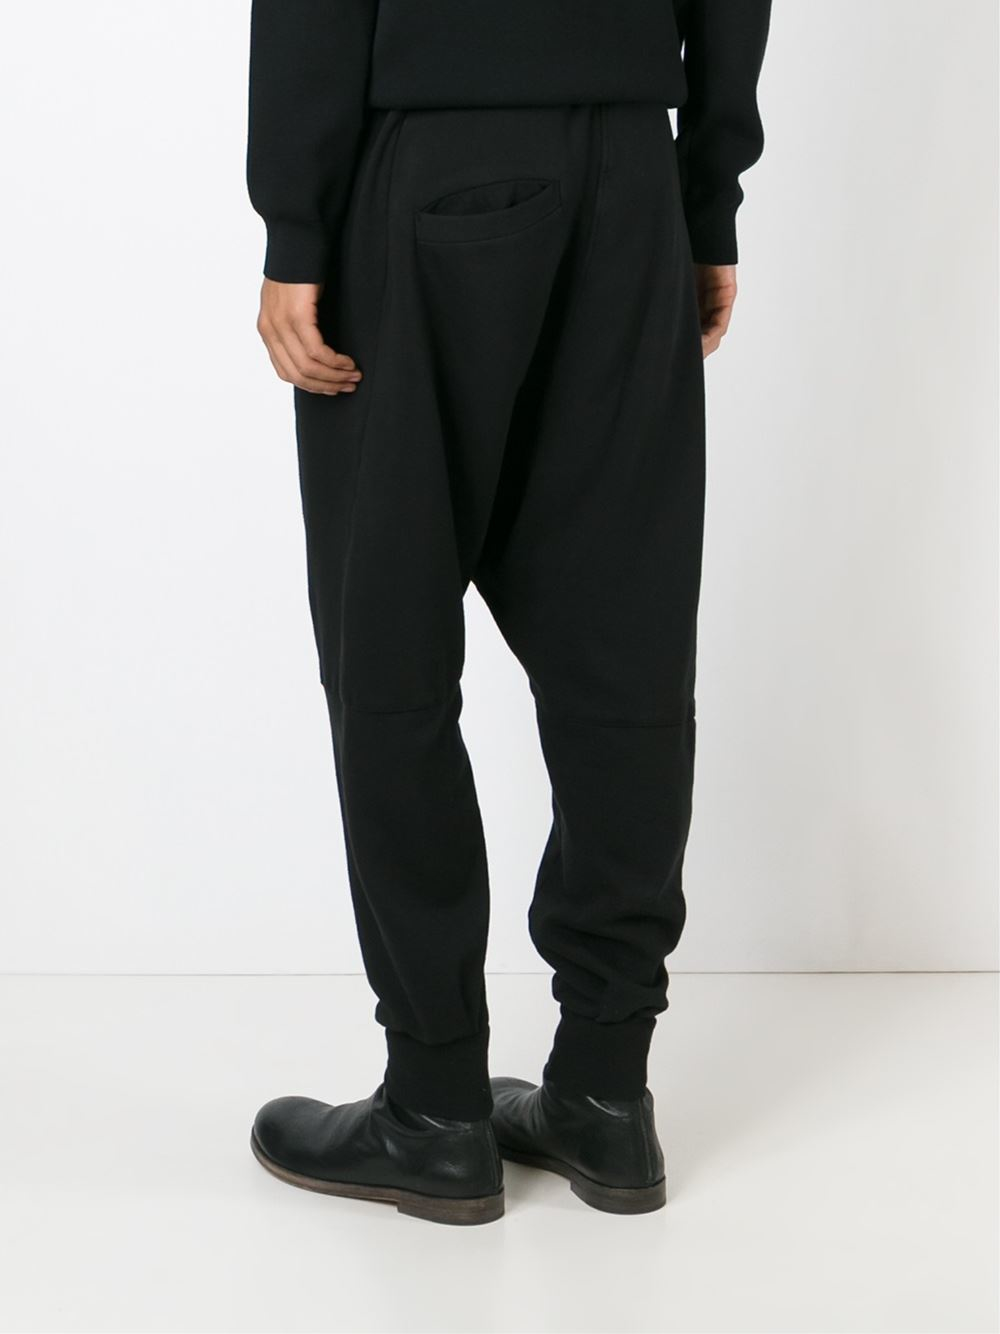 Lastest  Wang CrepeSatin Drop Crotch Pants  WOMEN  OPENING CEREMONY